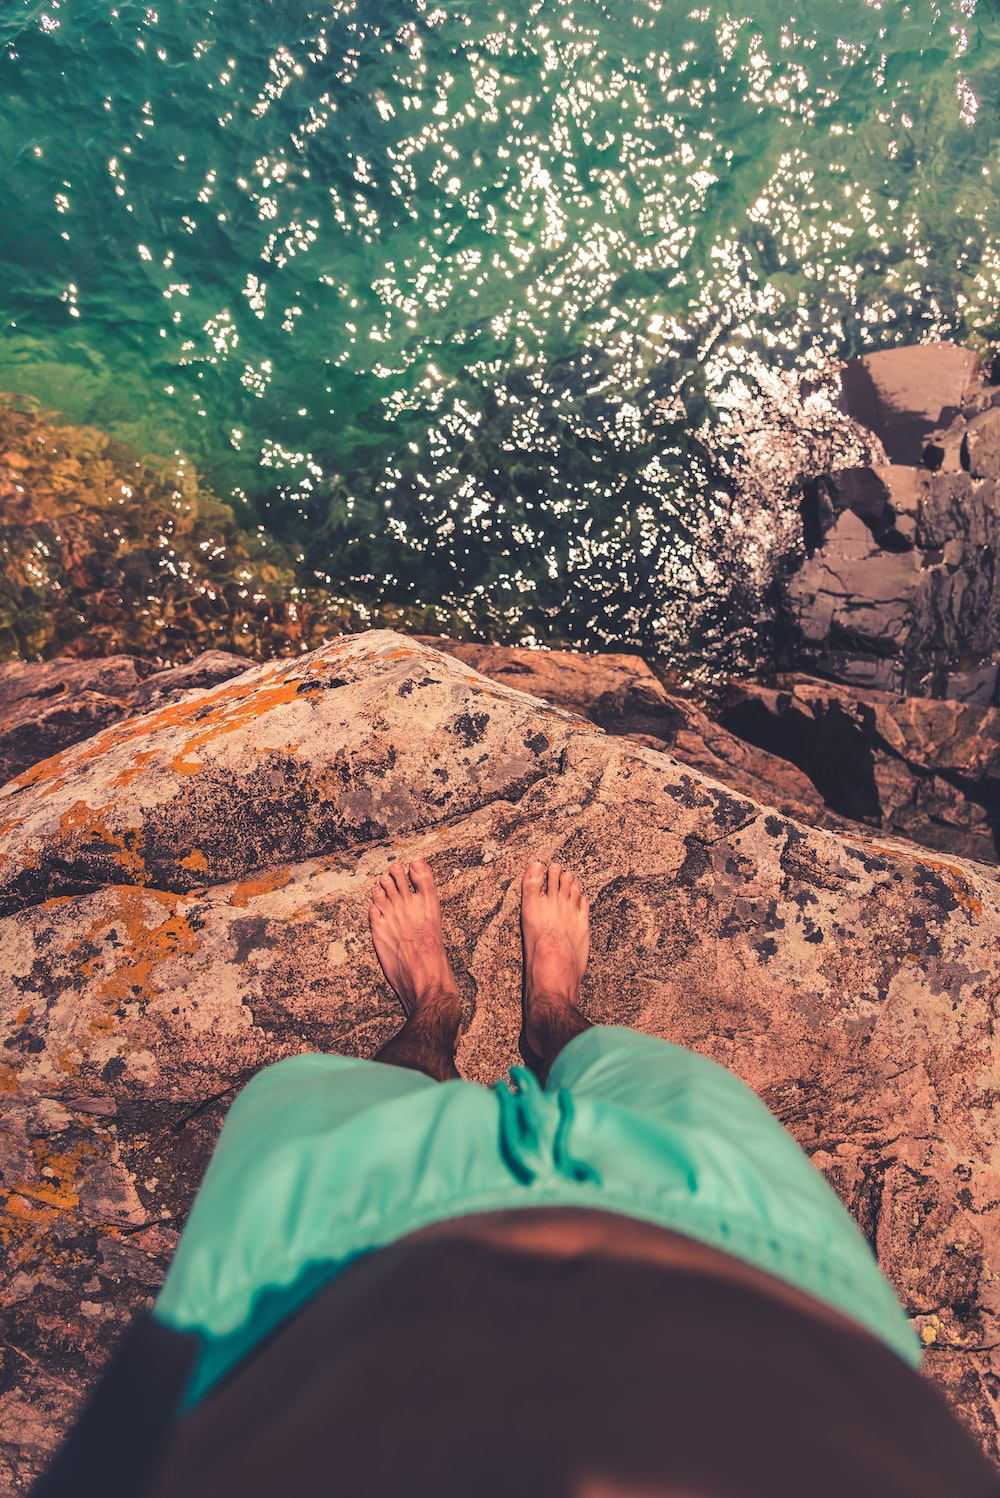 person in green pants sitting on rock near body of water during daytime